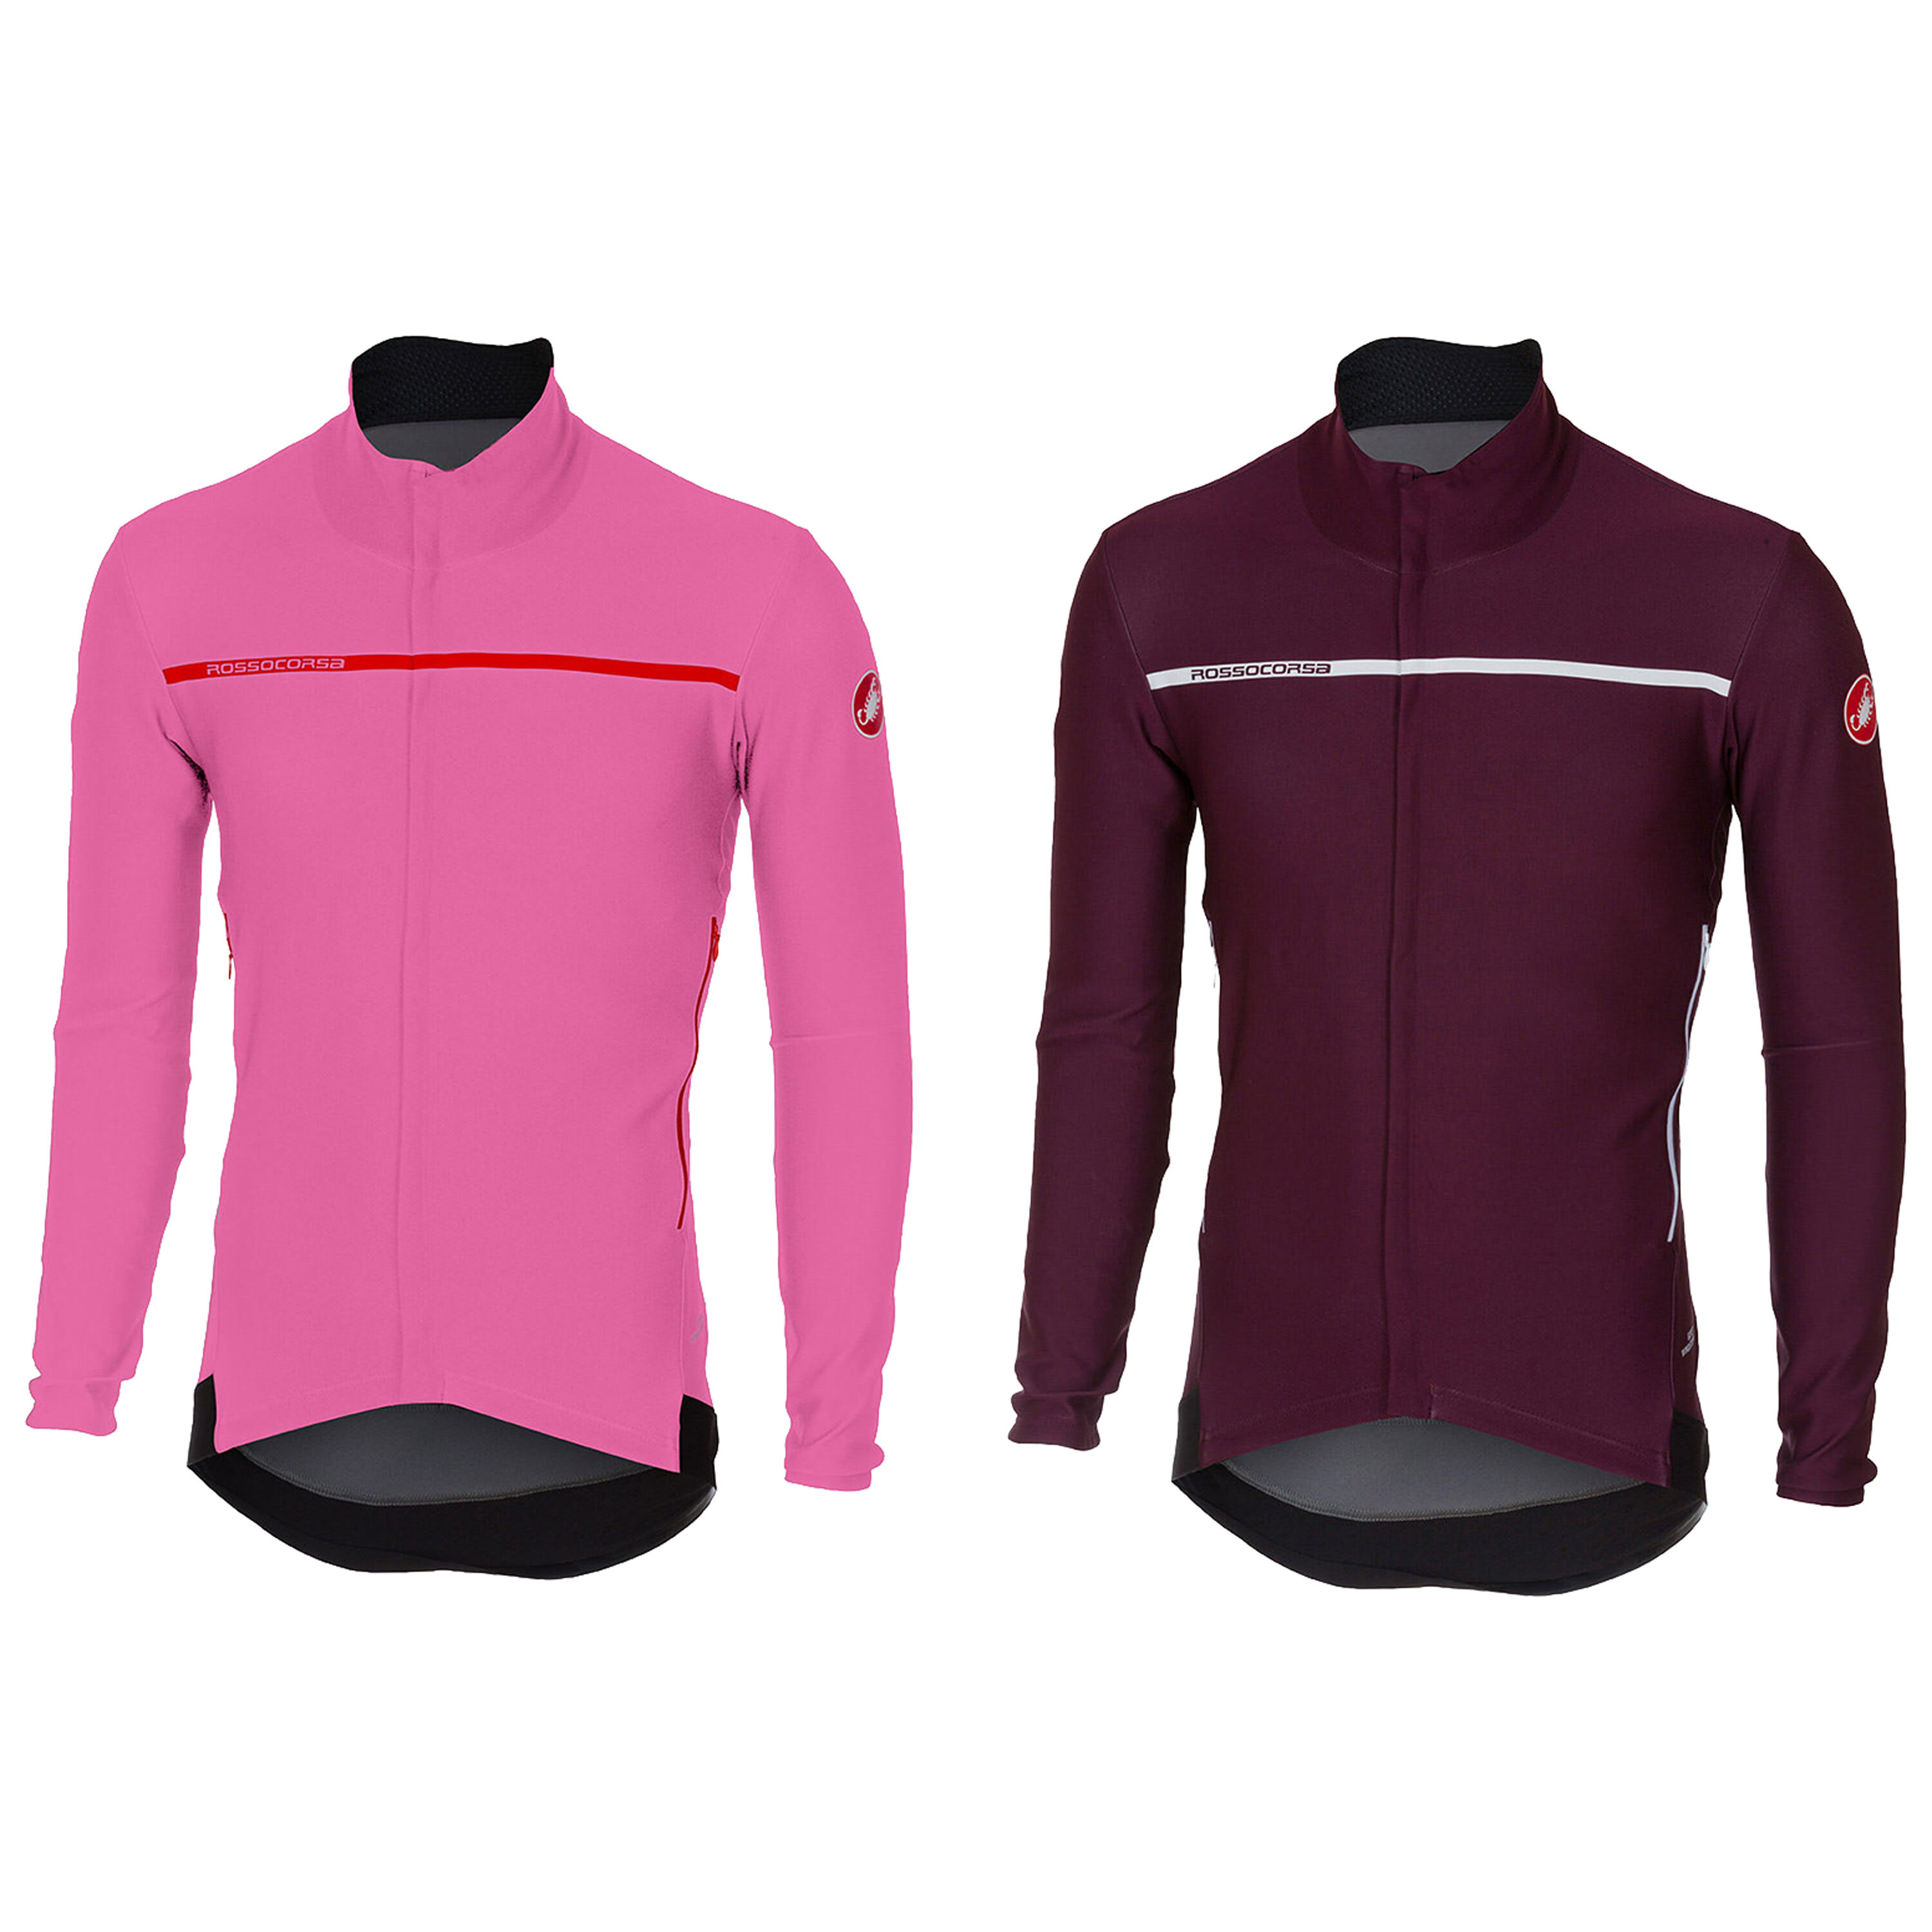 Castelli Perfetto LS Limited Edition jersey 2018. Brand  Castelli. Be the  first to review this product d7a203c61